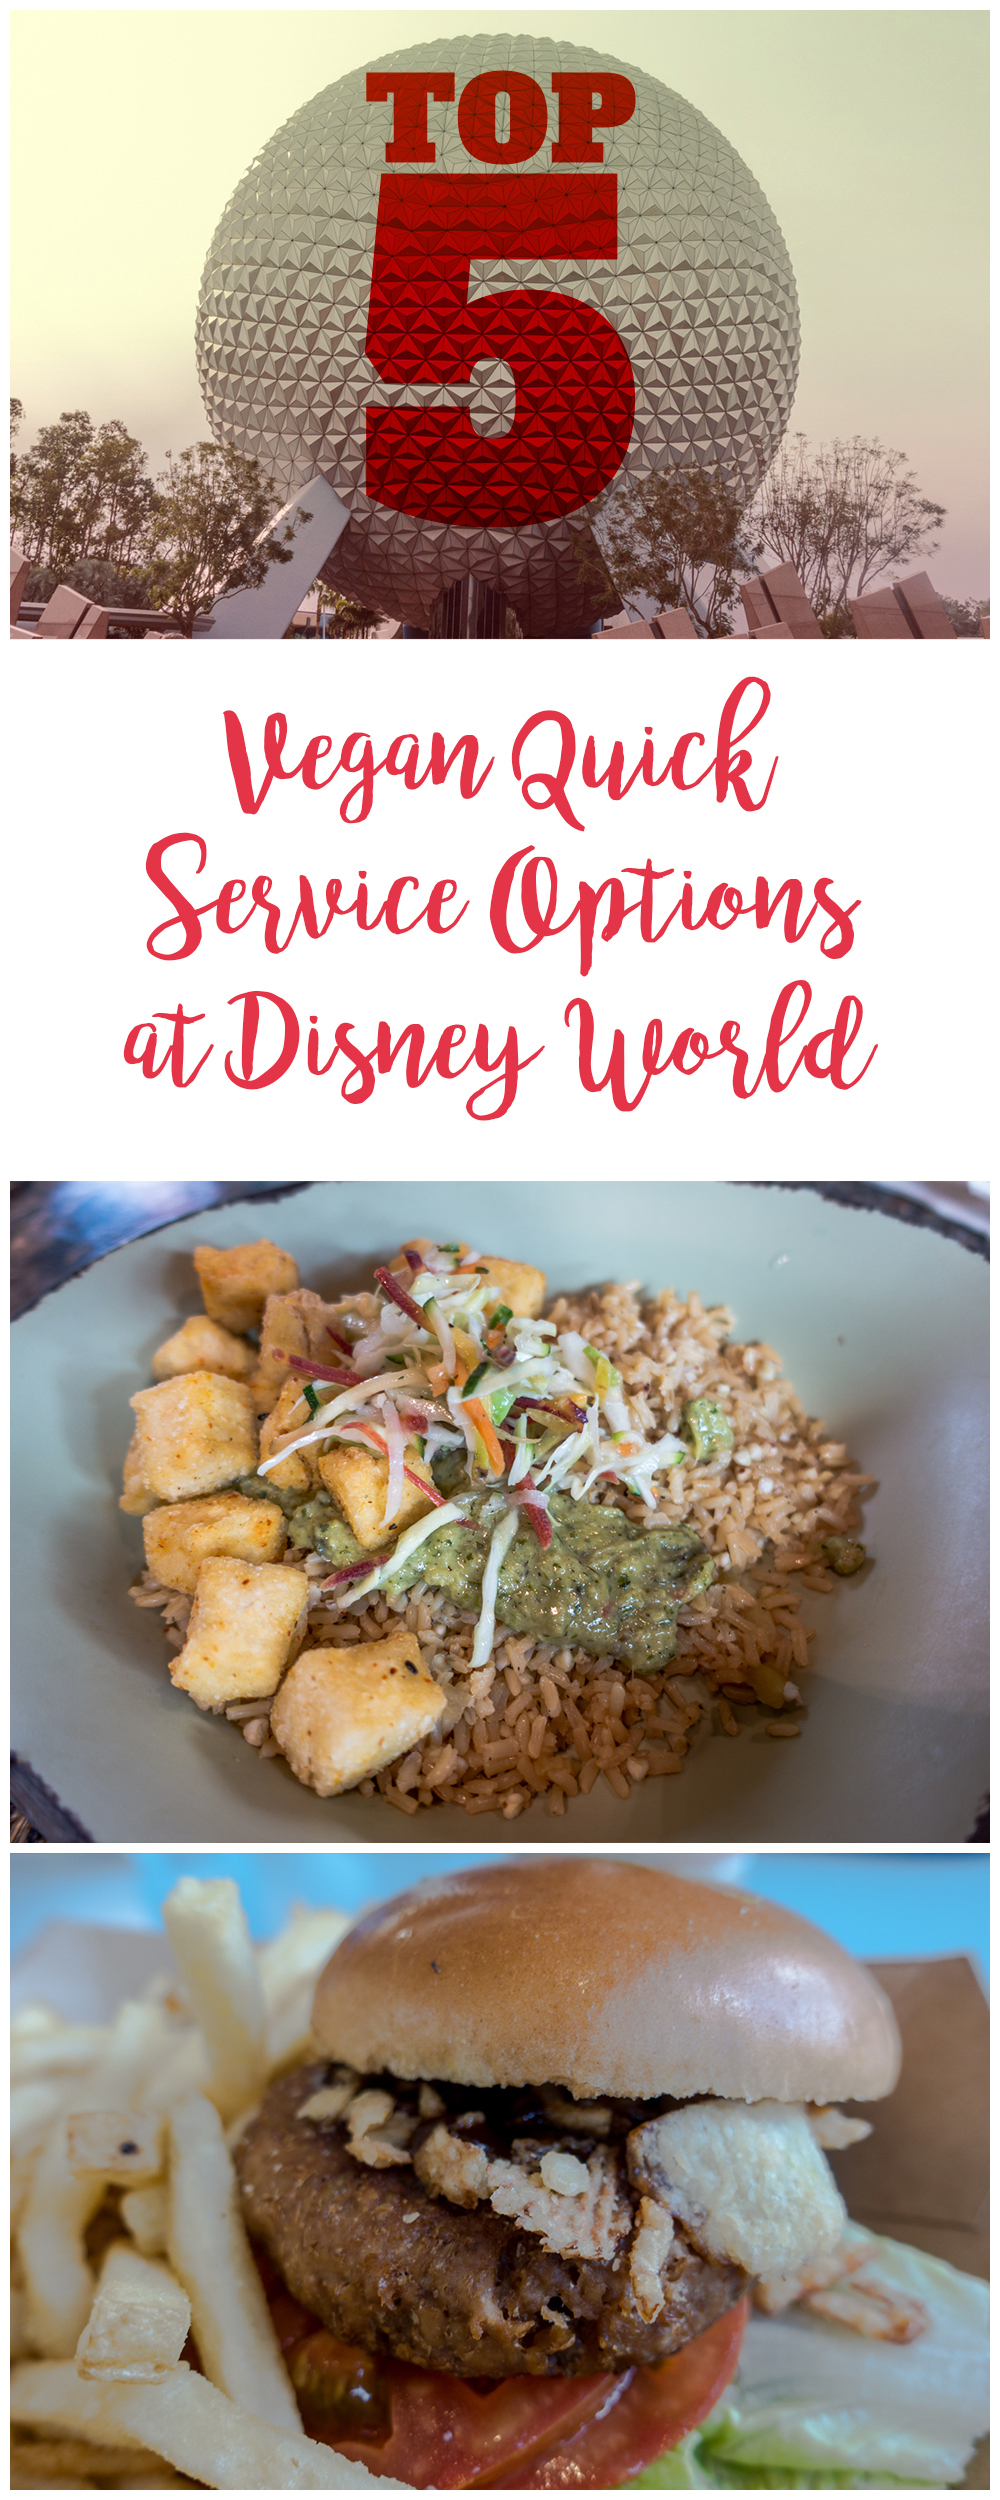 If you are planning a trip to Walt Disney World, check out my top 5 vegan quick service options at Walt Disney World! #vegan #disneyworld